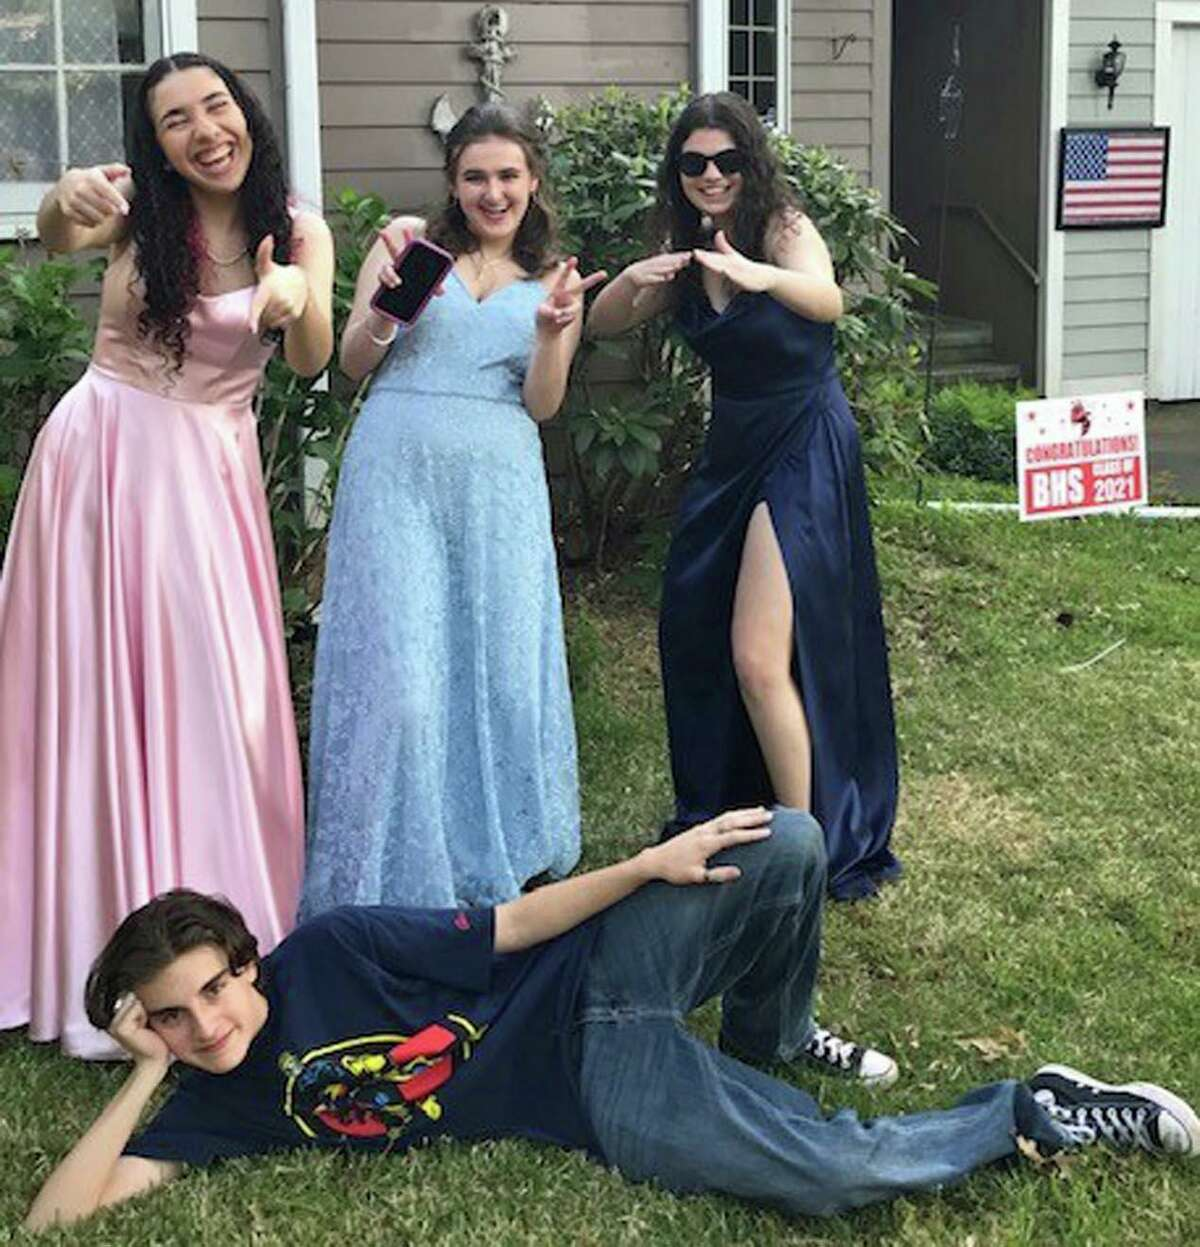 The writer's daughter's prom last weekend. Stella Penn is far left and his son Luke is on the ground, mugging for the shot.